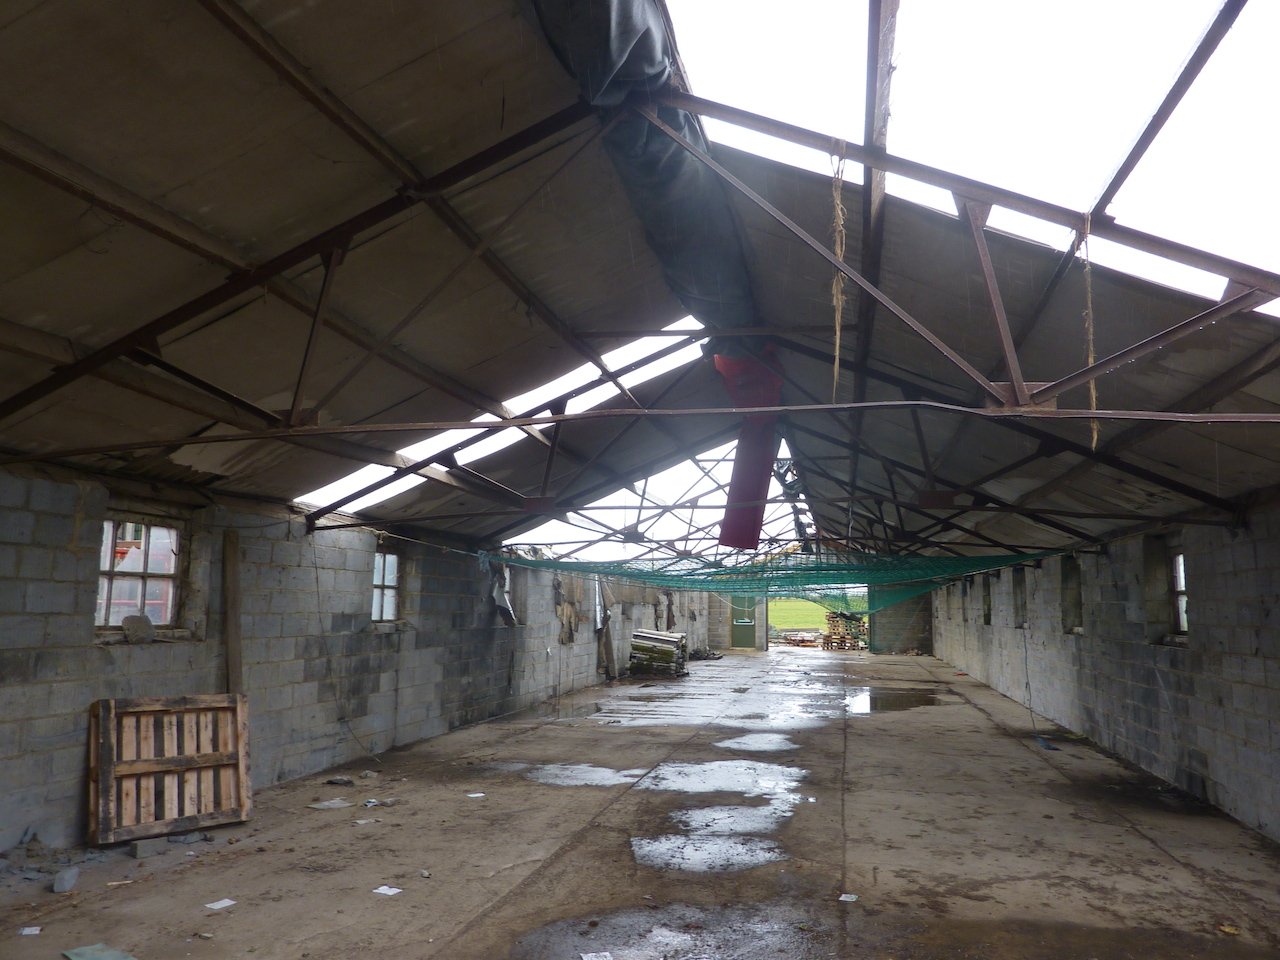 Photo shows the farm building where work took place